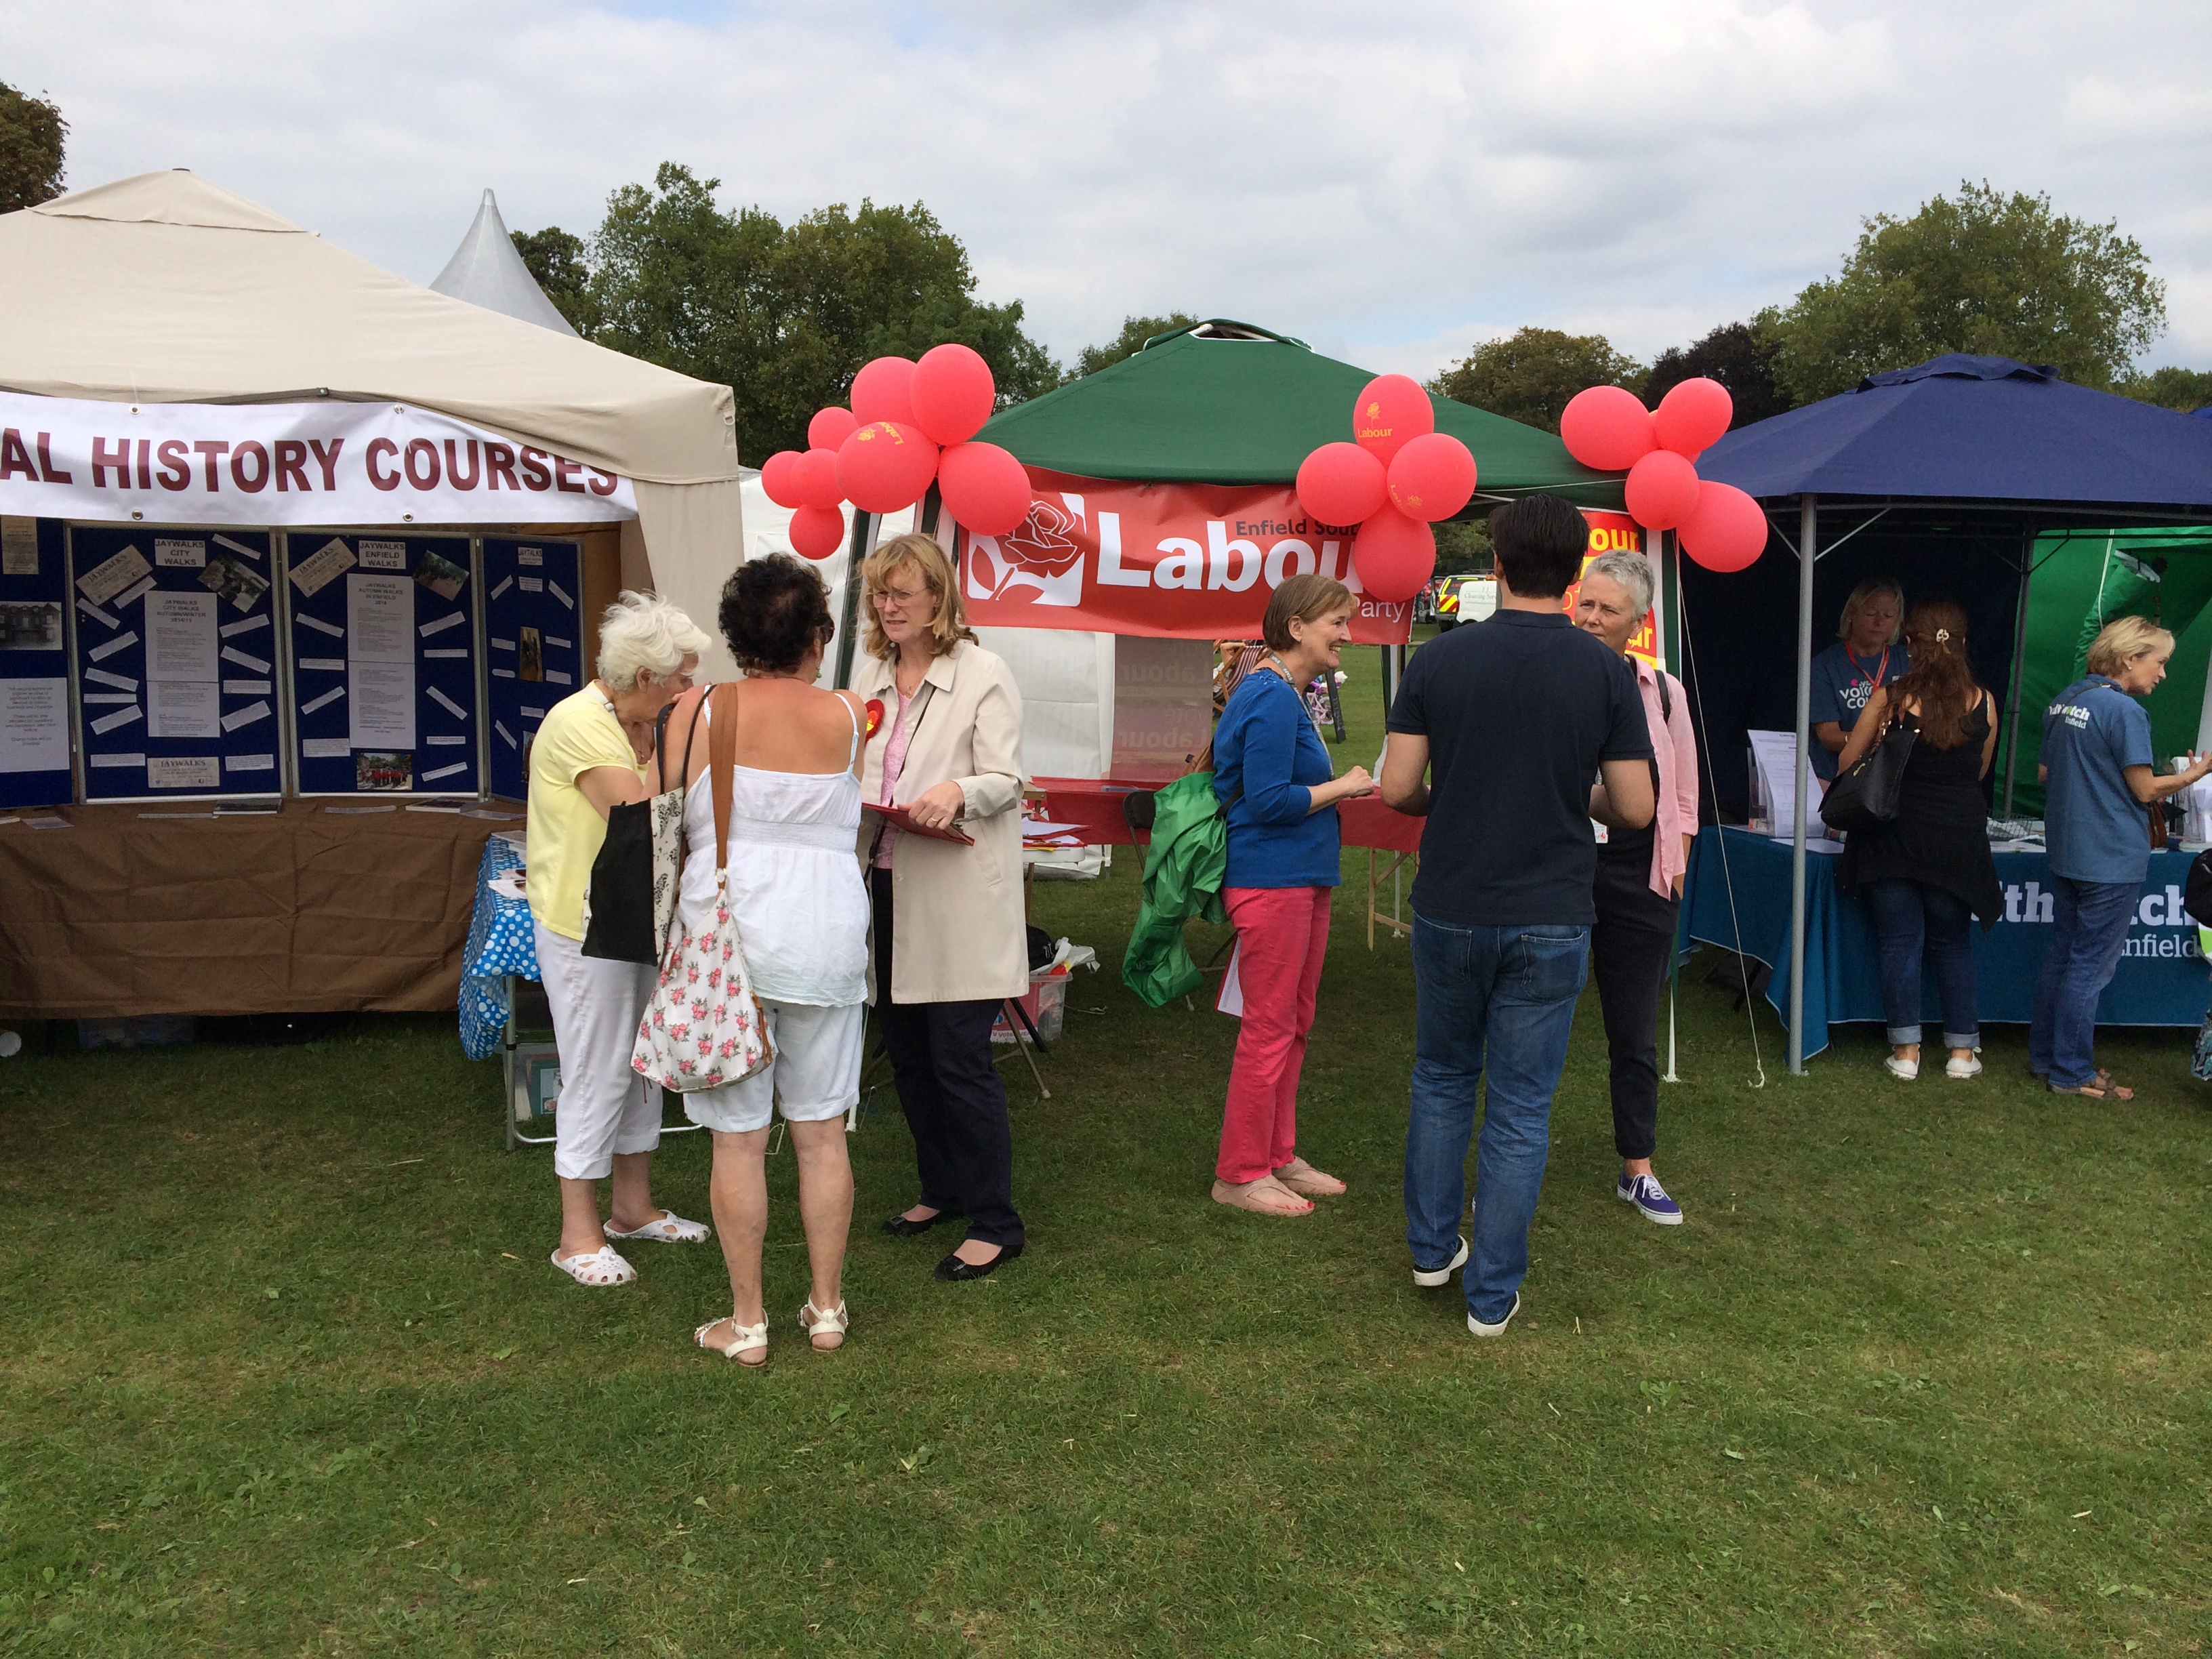 Enfield_Town_Show_-_Meeting_residents.jpg